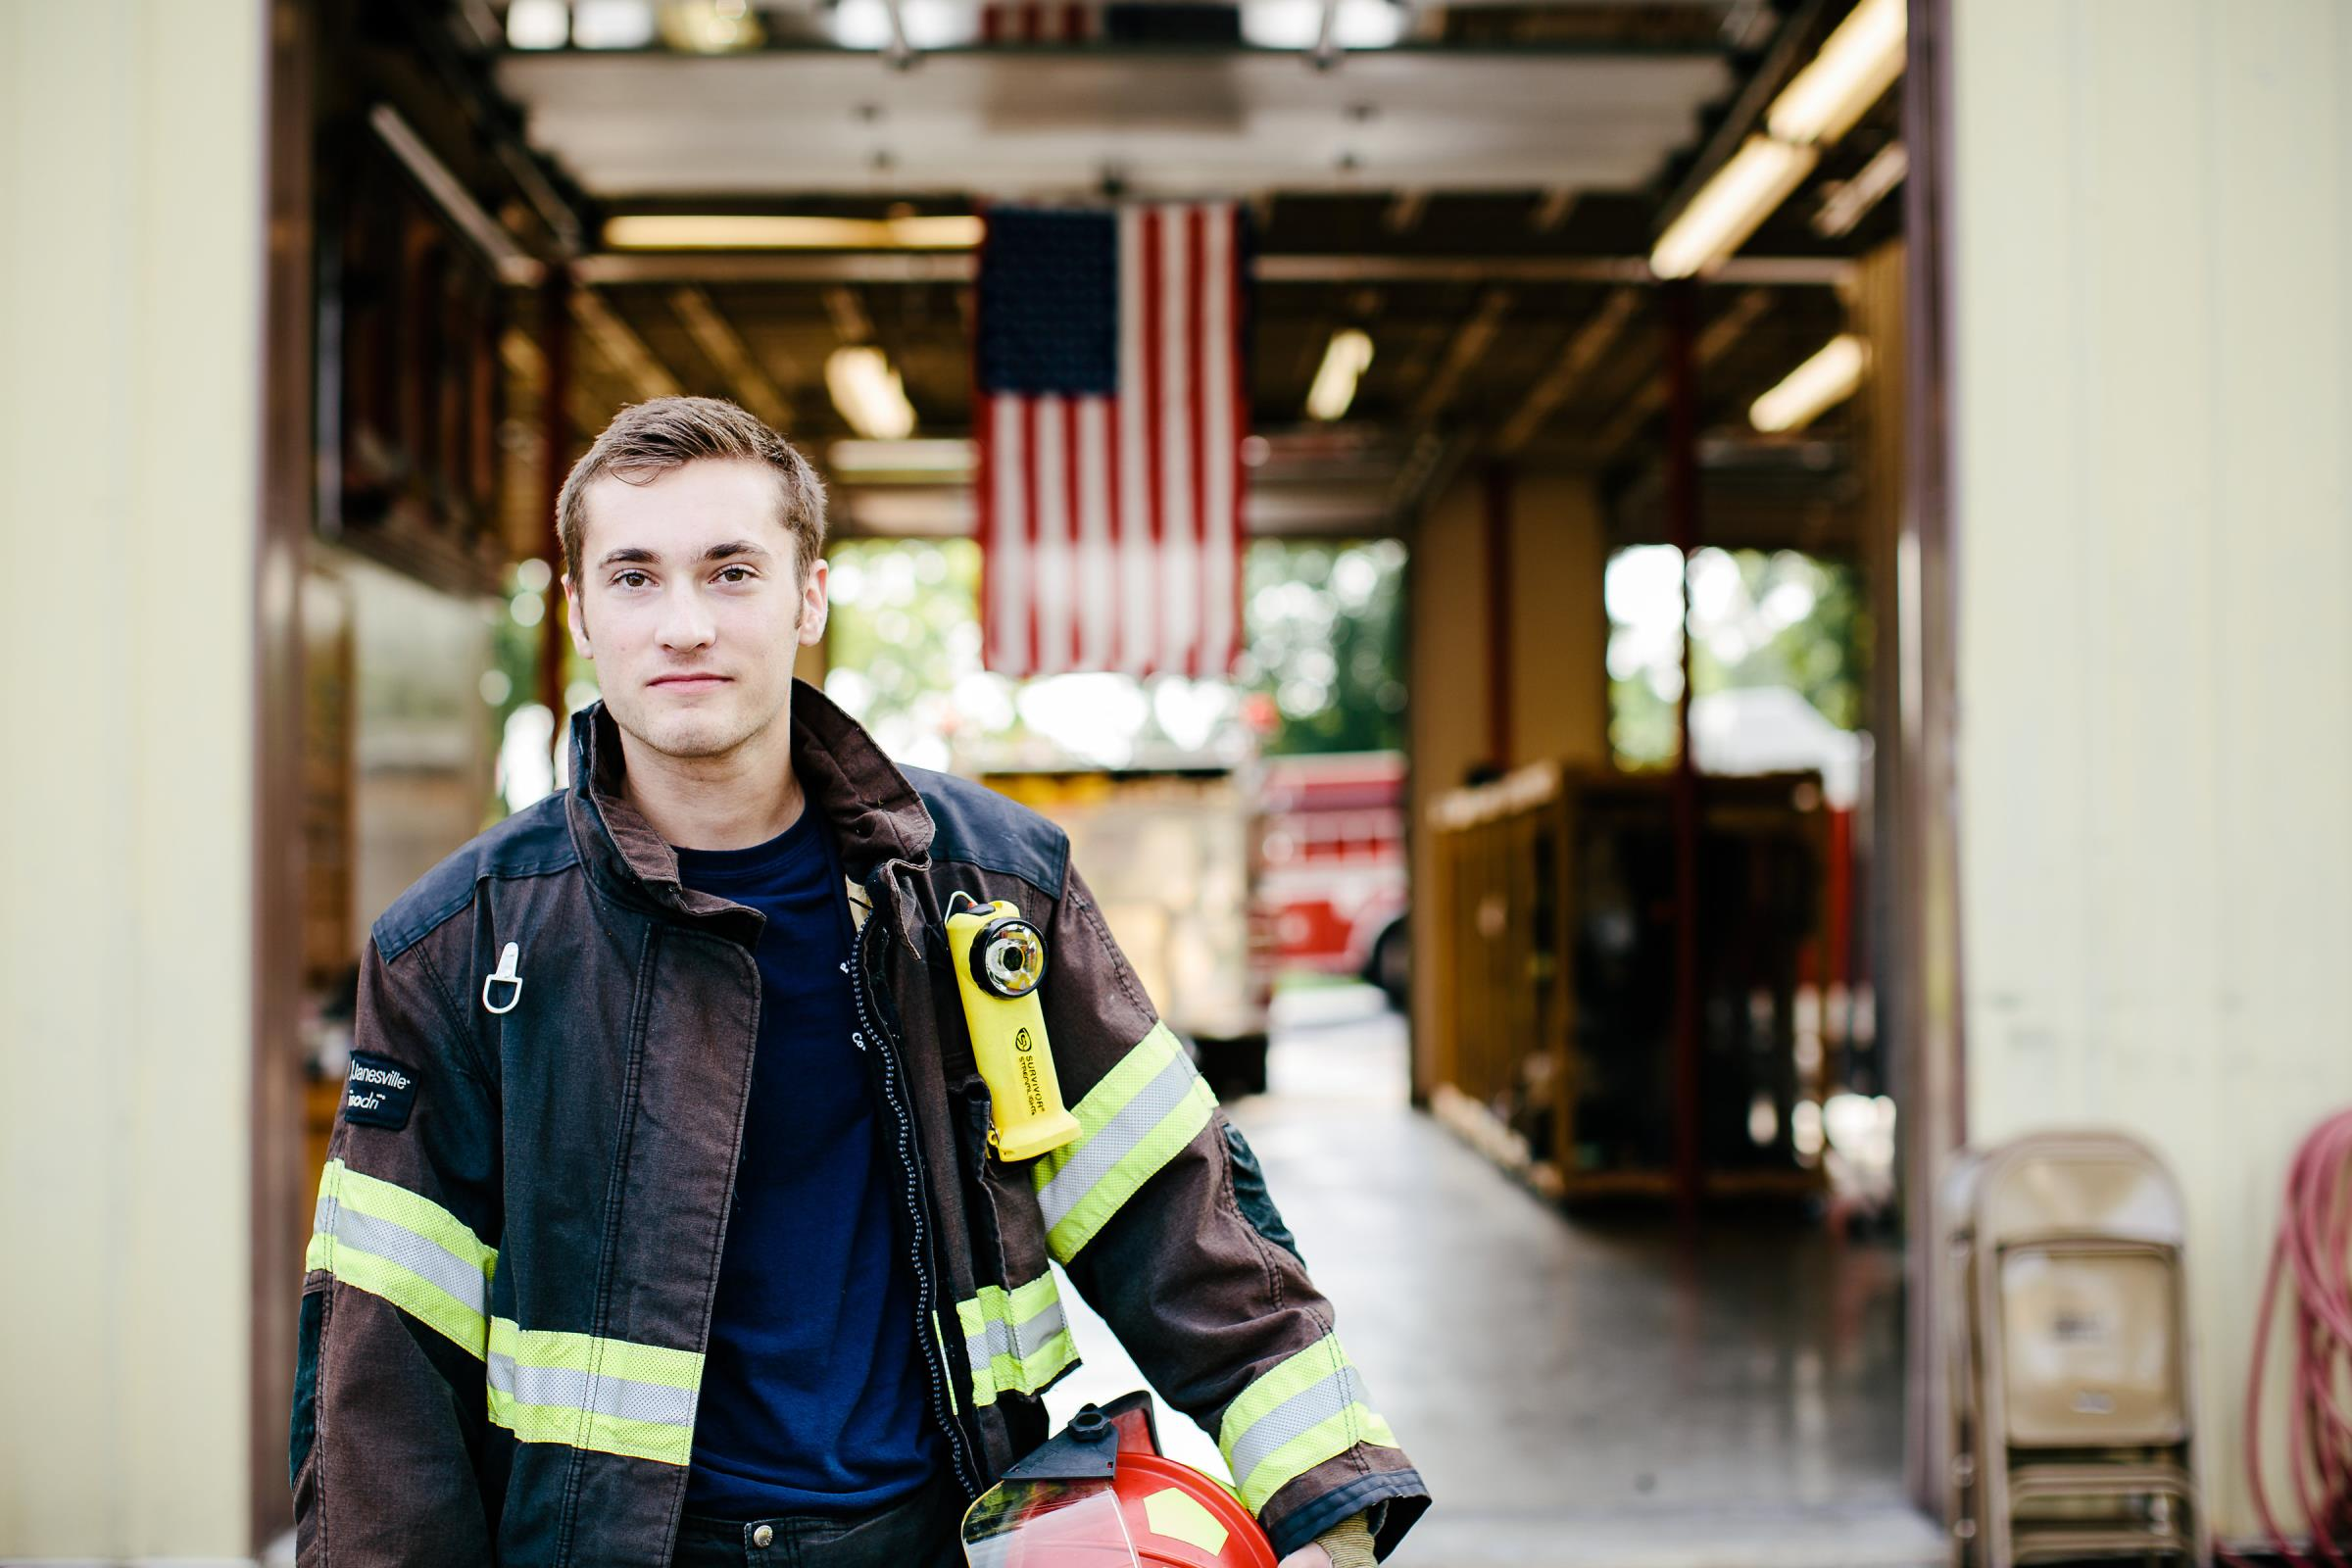 Fire department student worker in front of the firehouse